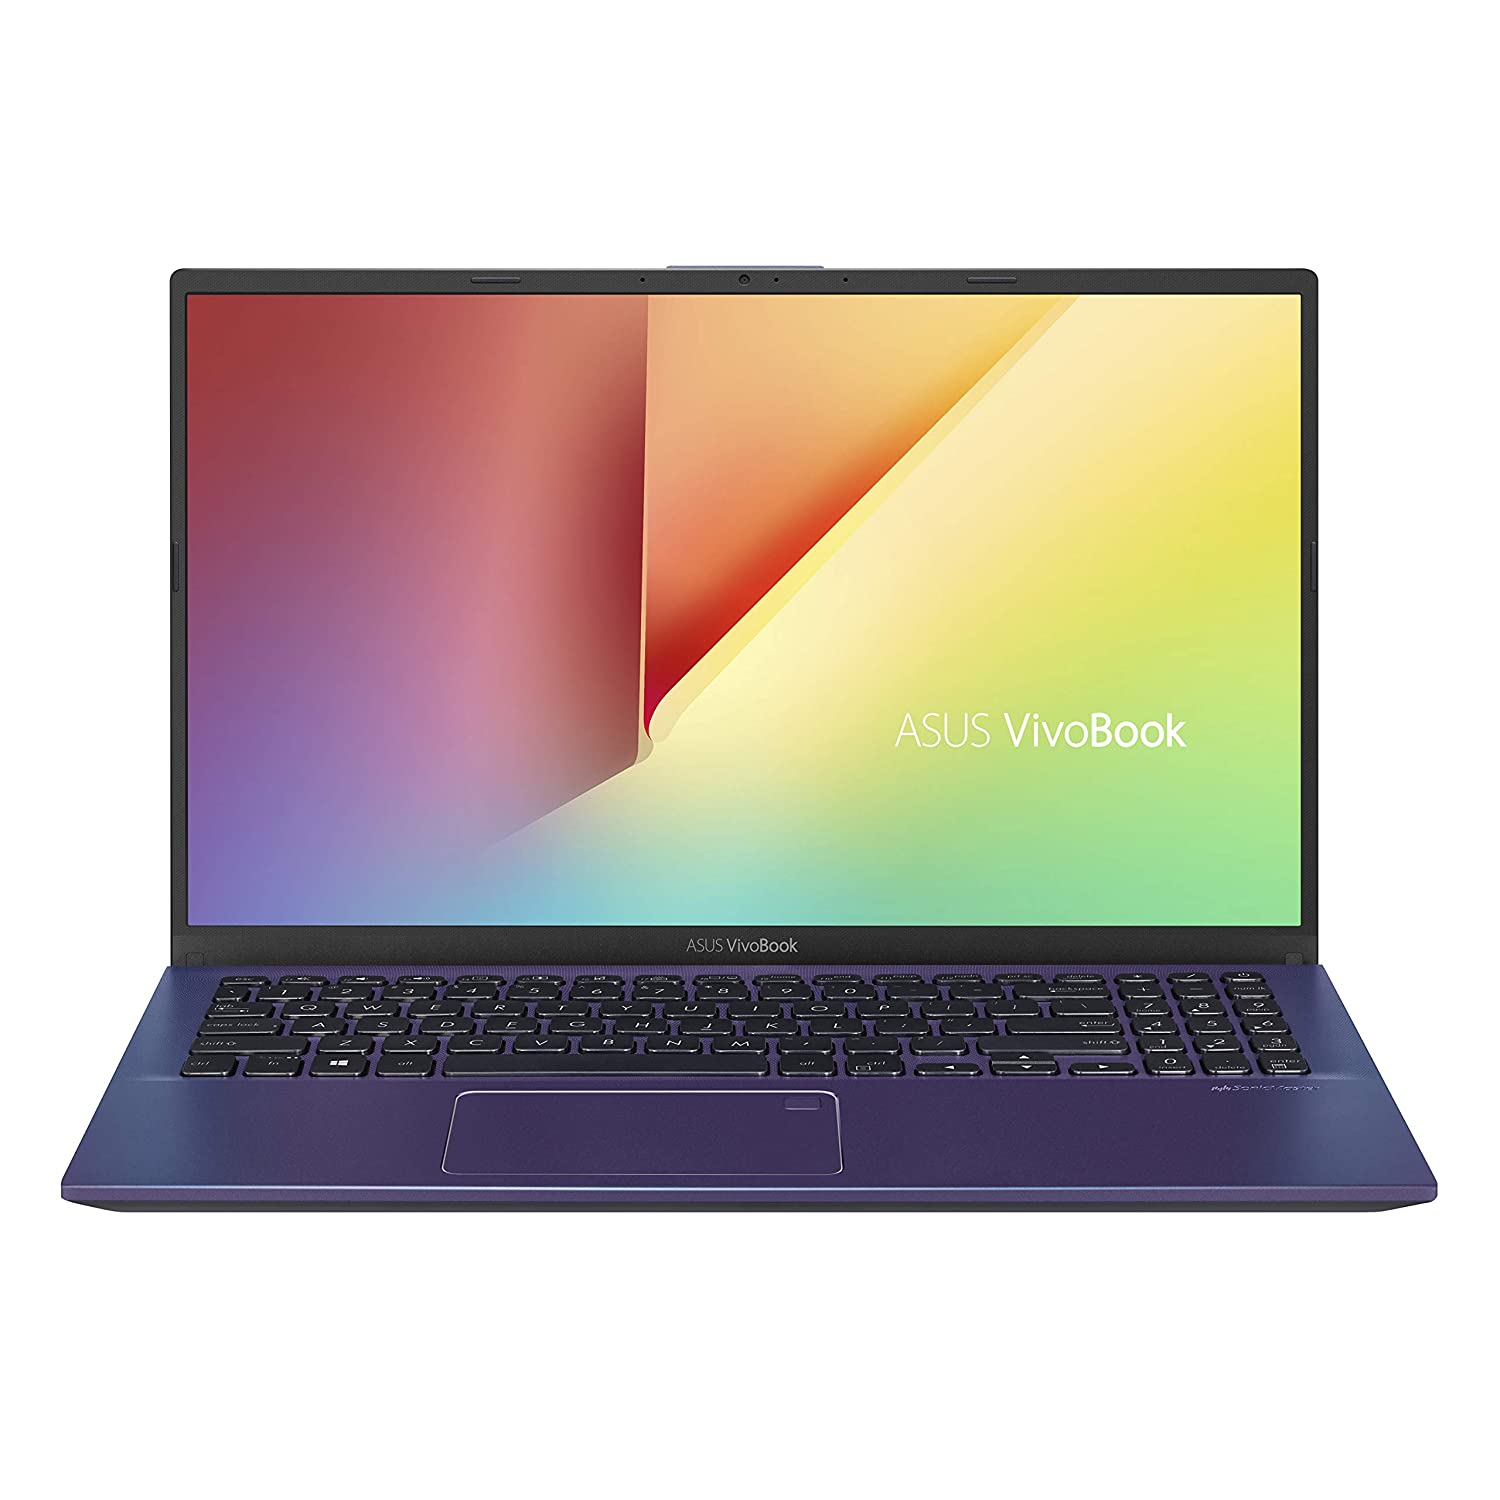 Asus Vivobook Best Model | ASUS VivoBook 15 X512FA Intel Core i3 8th Gen